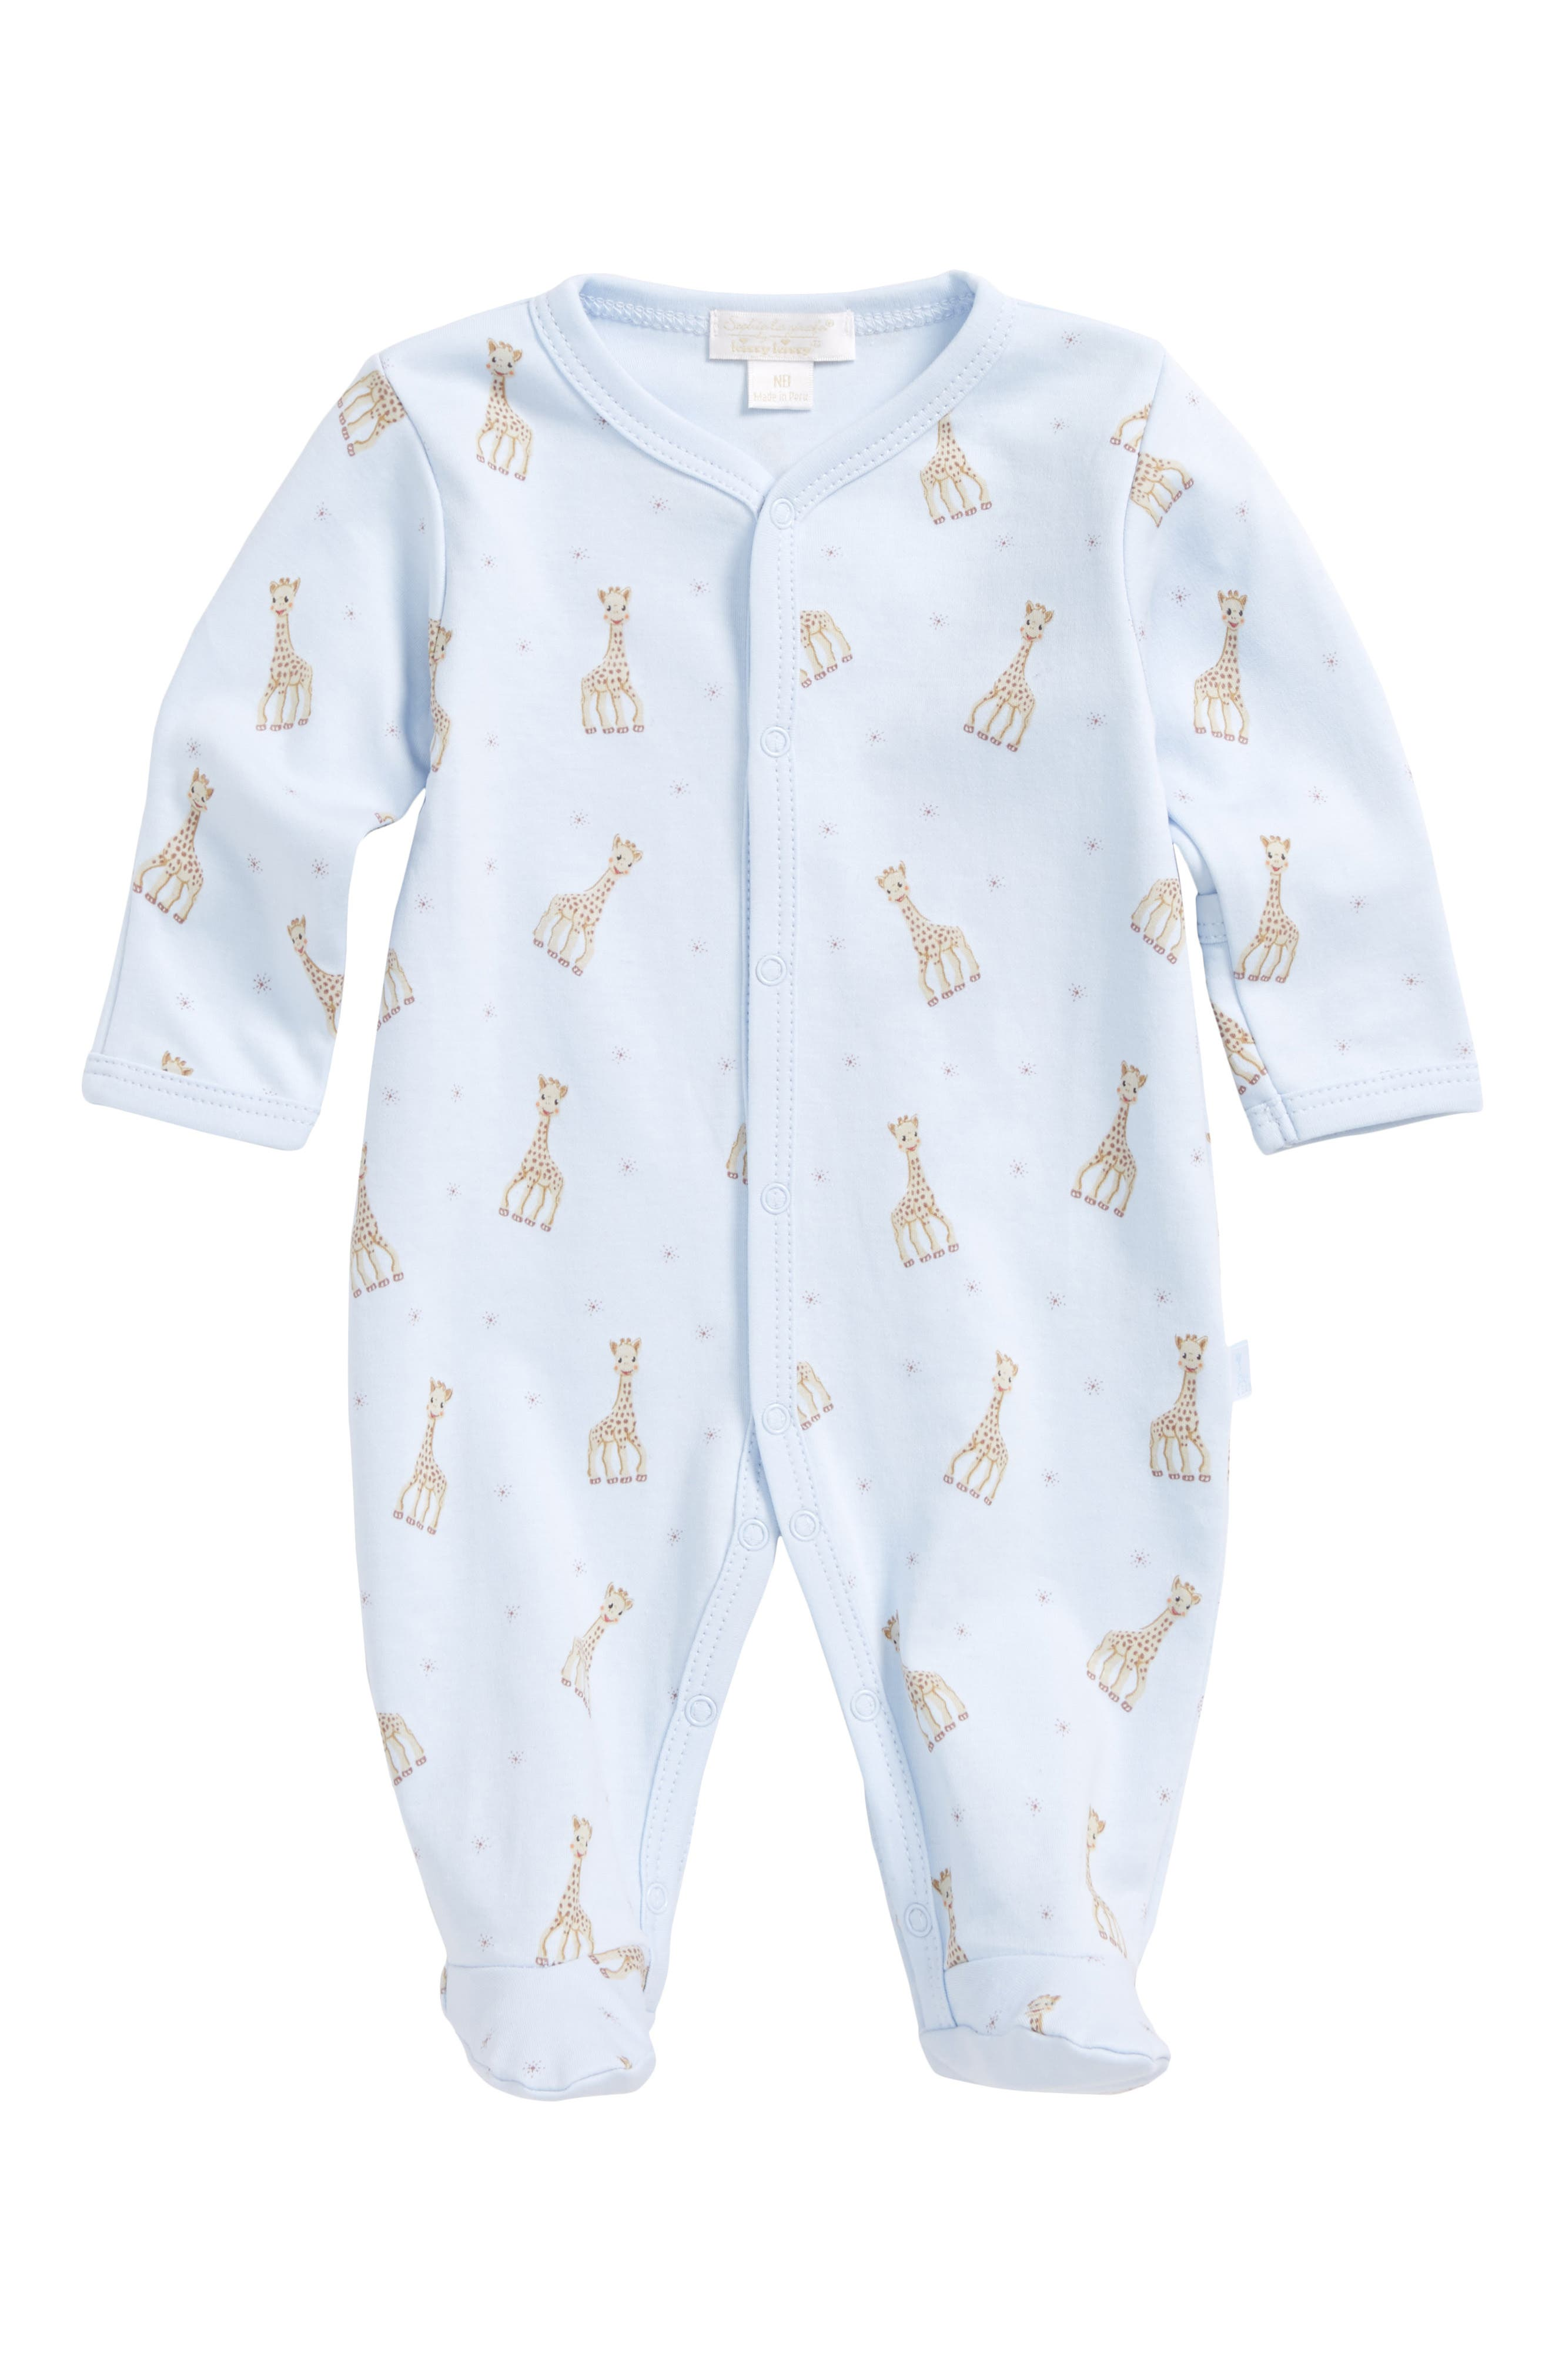 x Sophie la Girafe Print Footie,                         Main,                         color, LIGHT BLUE PRINT